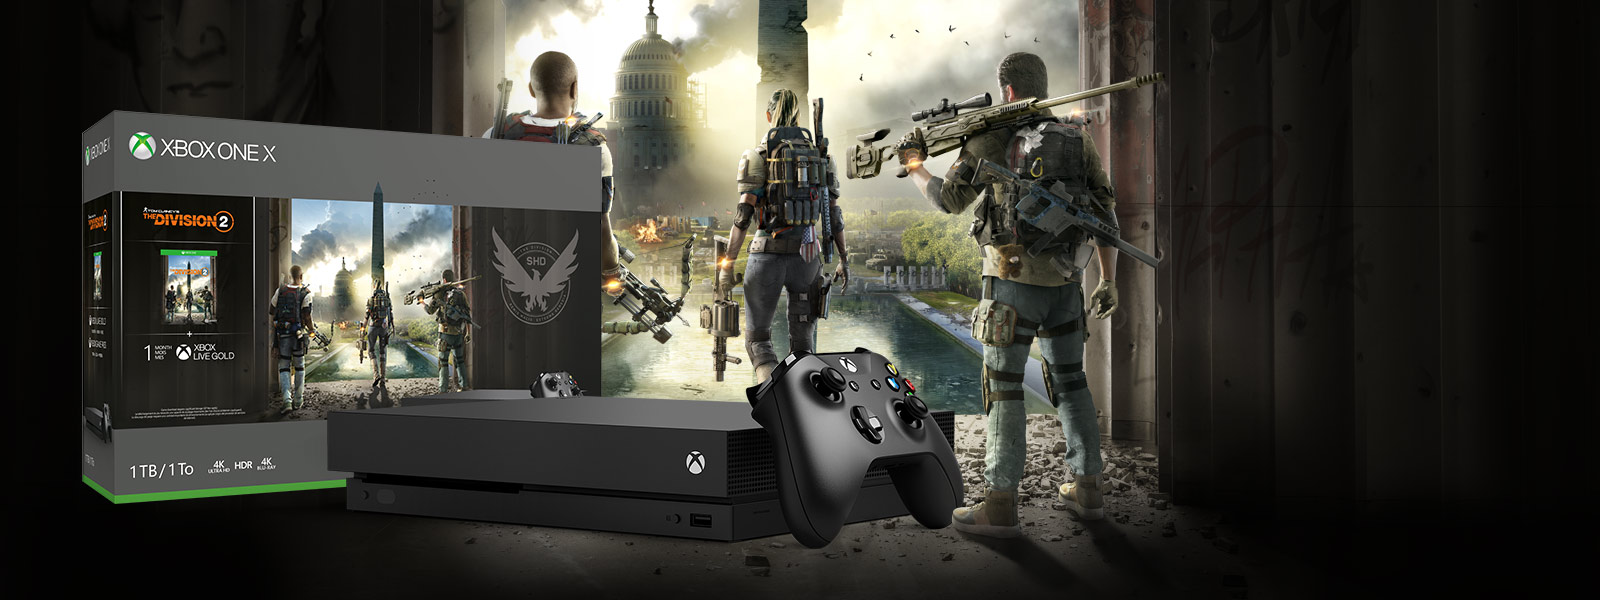 Console Xbox One X devant une boîte du pack avec une illustration de Tom Clancy's The Division 2